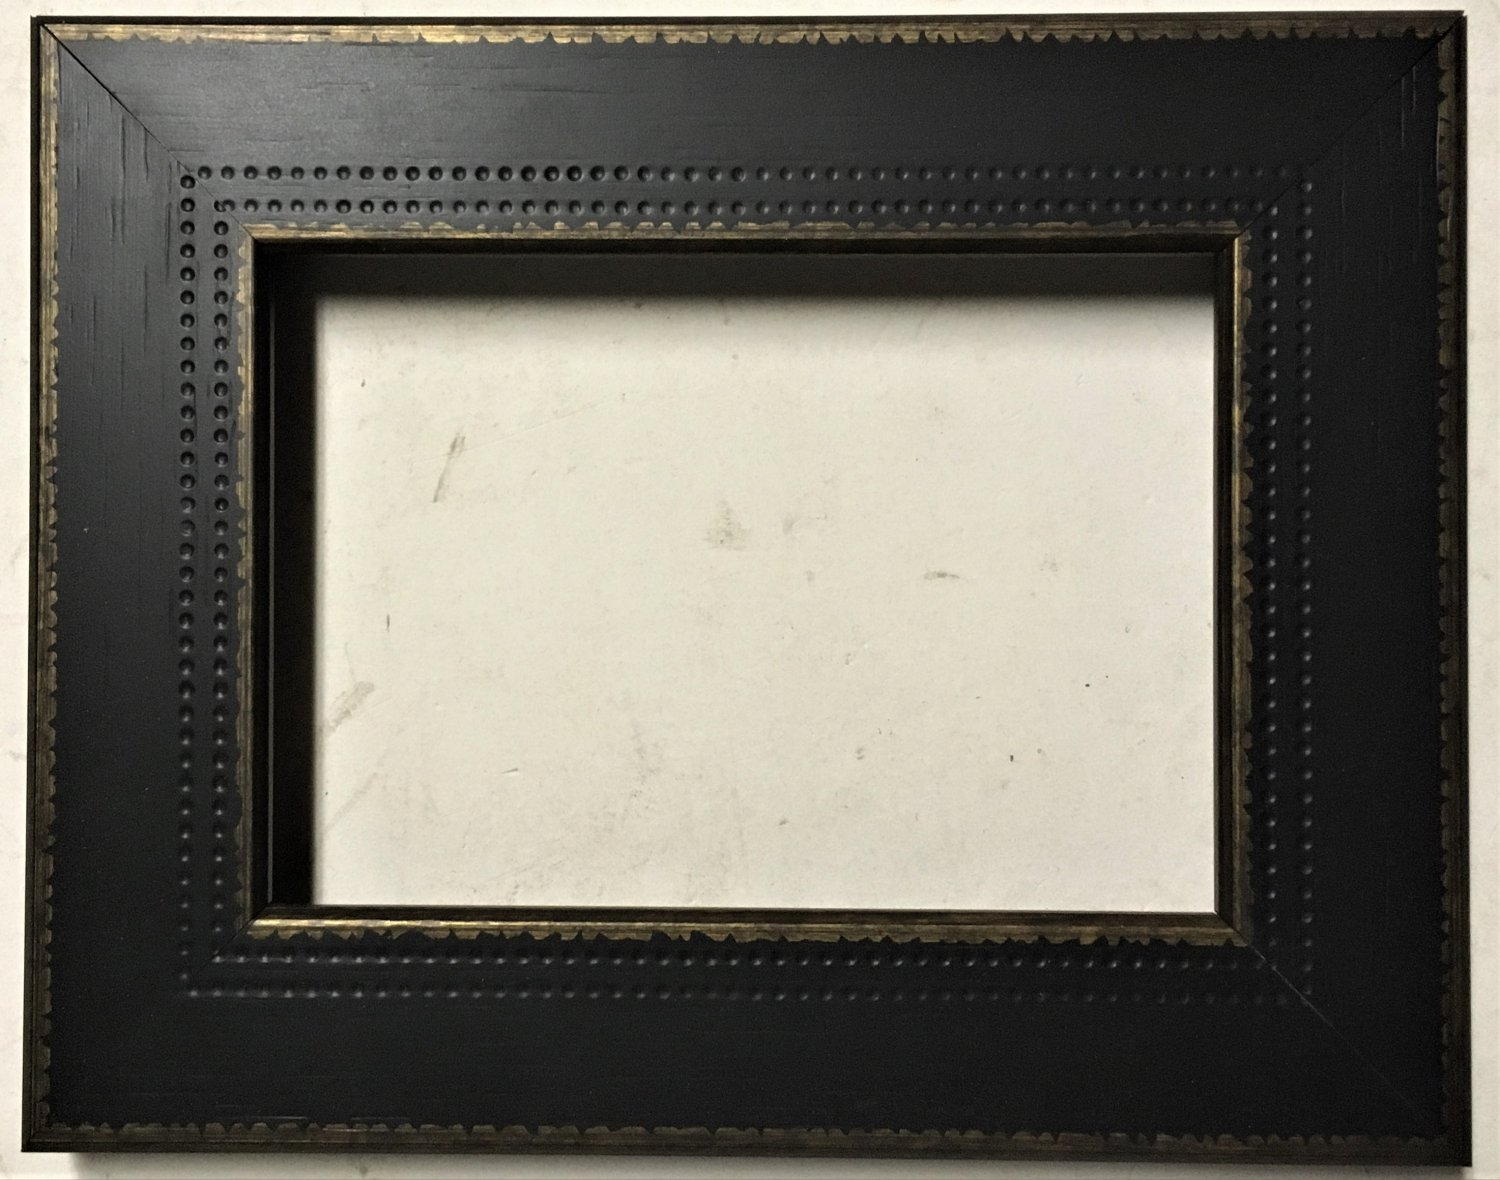 "20 x 24 1-3/4"" Black w/Gold Picture Frame"